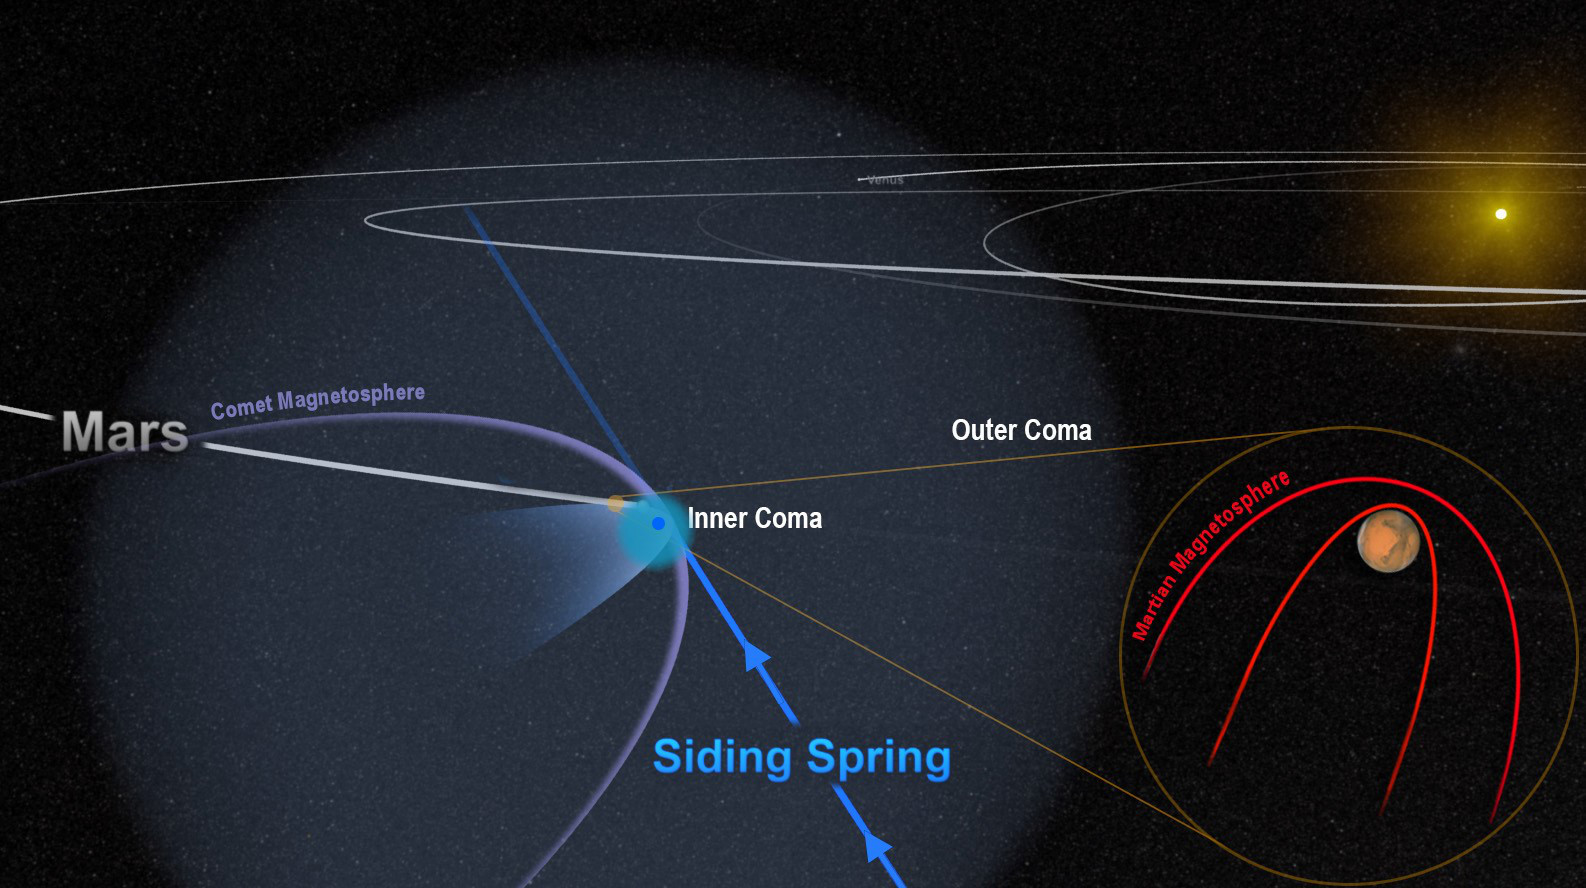 The close encounter between comet SidingSpring and Mars flooded the planet with an invisible tide of charged particles from the comet's coma. The dense inner coma reached the surface of the planet, or nearly so. The comet's powerful magnetic field temporarily merged with, and overwhelmed, the planet's weak field, as shown in this artist's depiction. Illustration credits: NASA/Goddard.